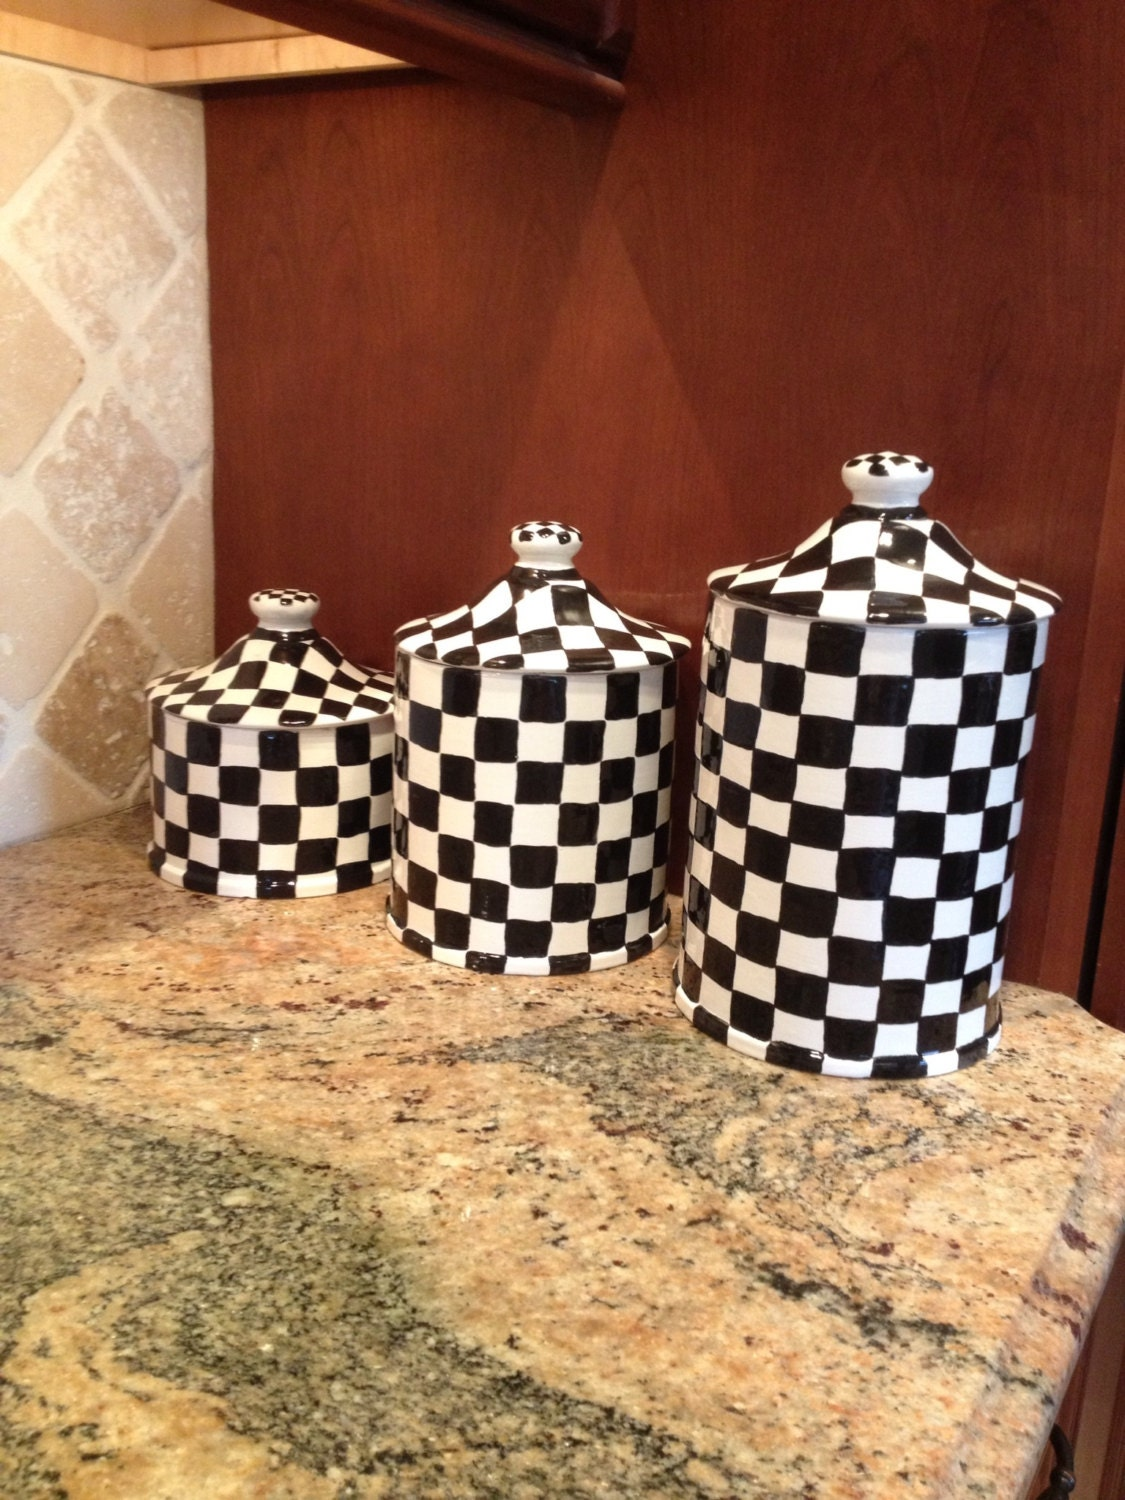 Kitchen Canister Sets Ceramic Clay Black And White Checkered Canister By